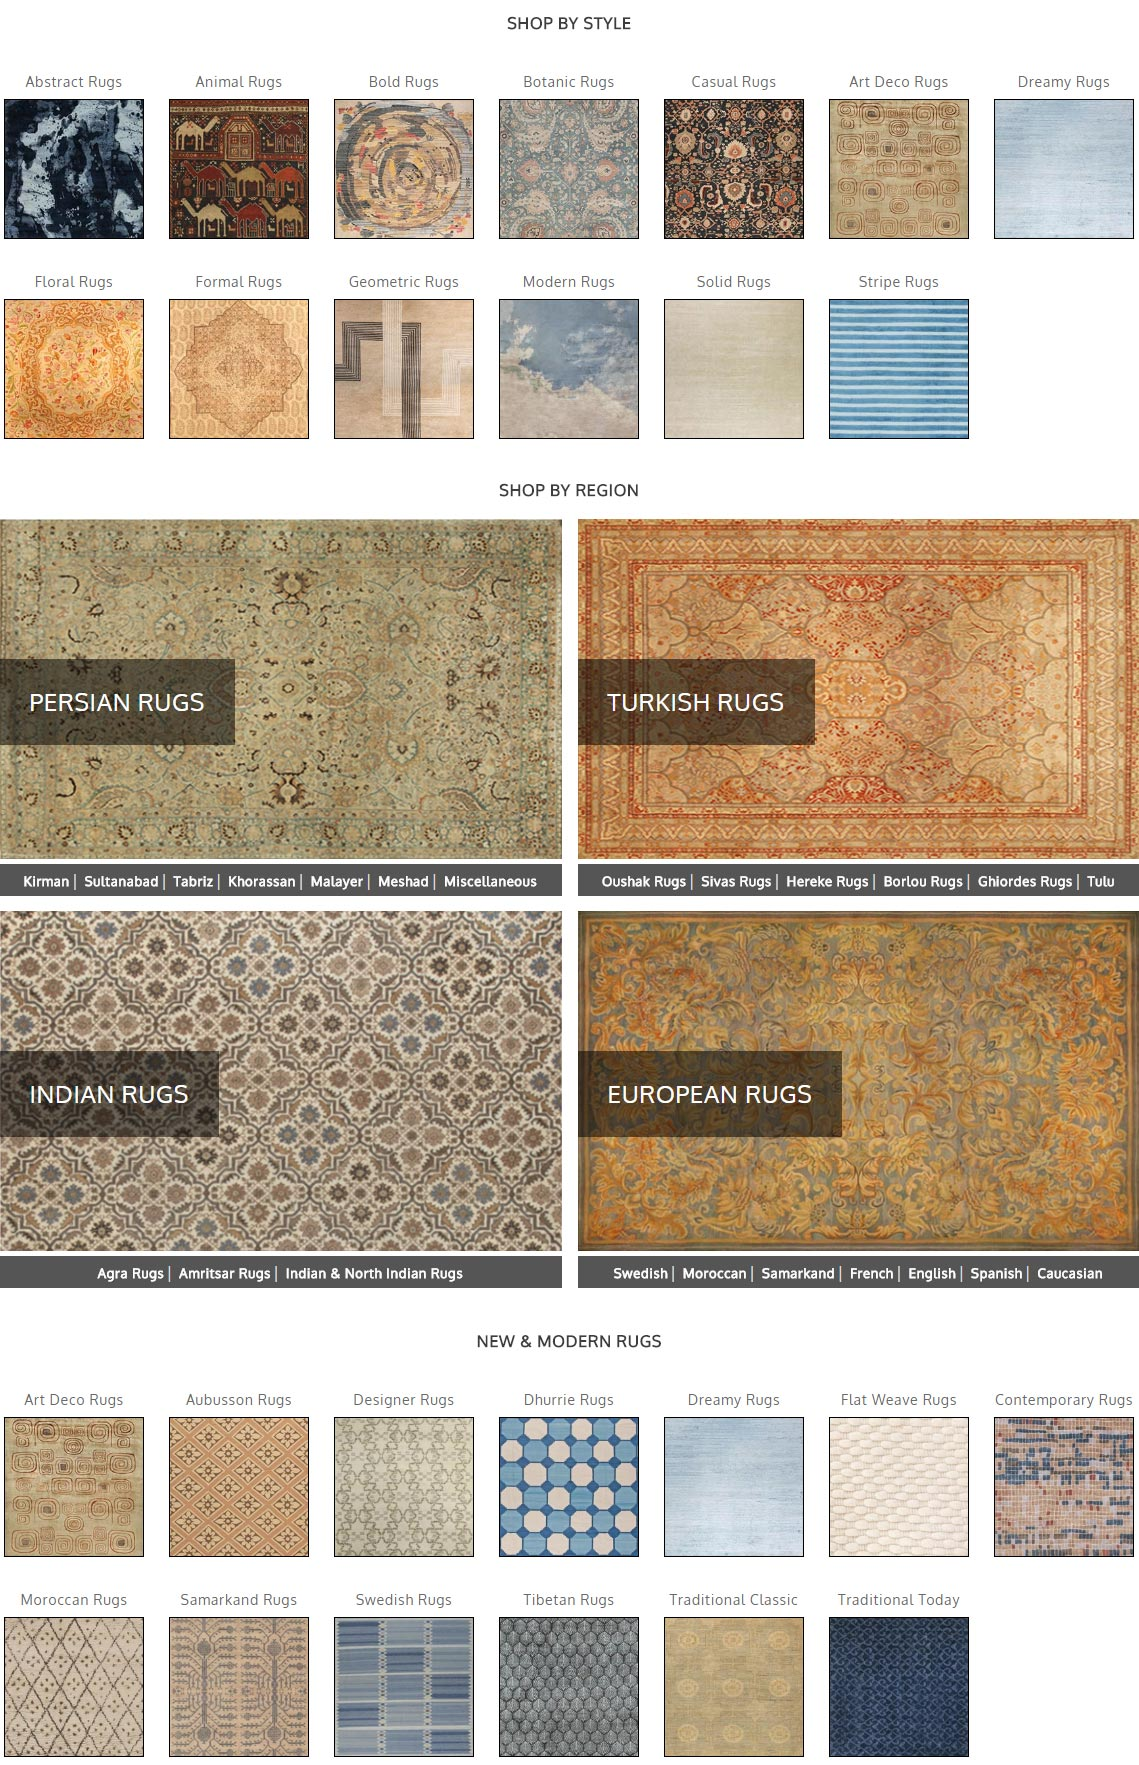 Shop more rugs